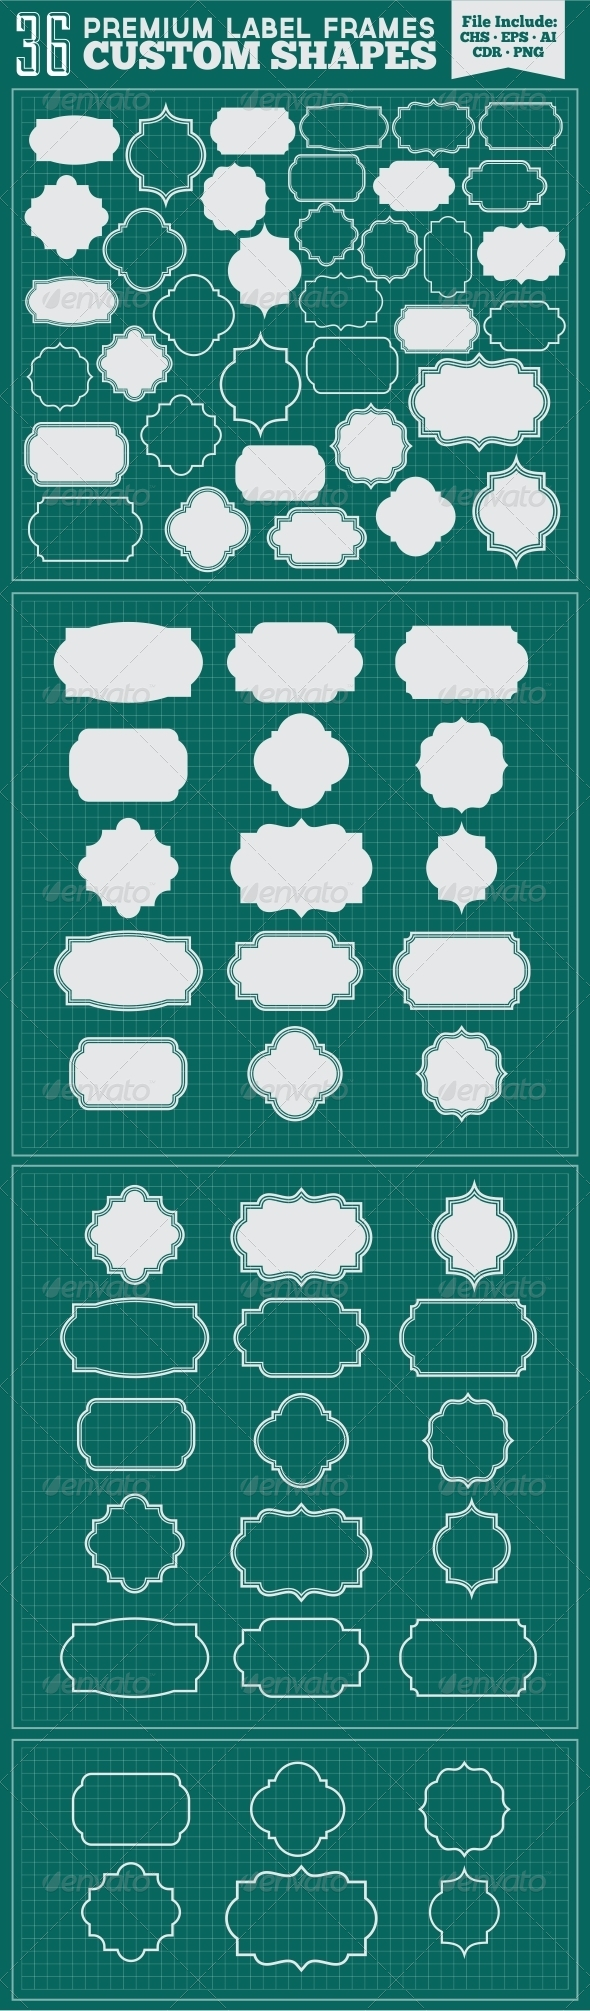 GraphicRiver 36 Premium Label Frames Custom Shapes 5638215